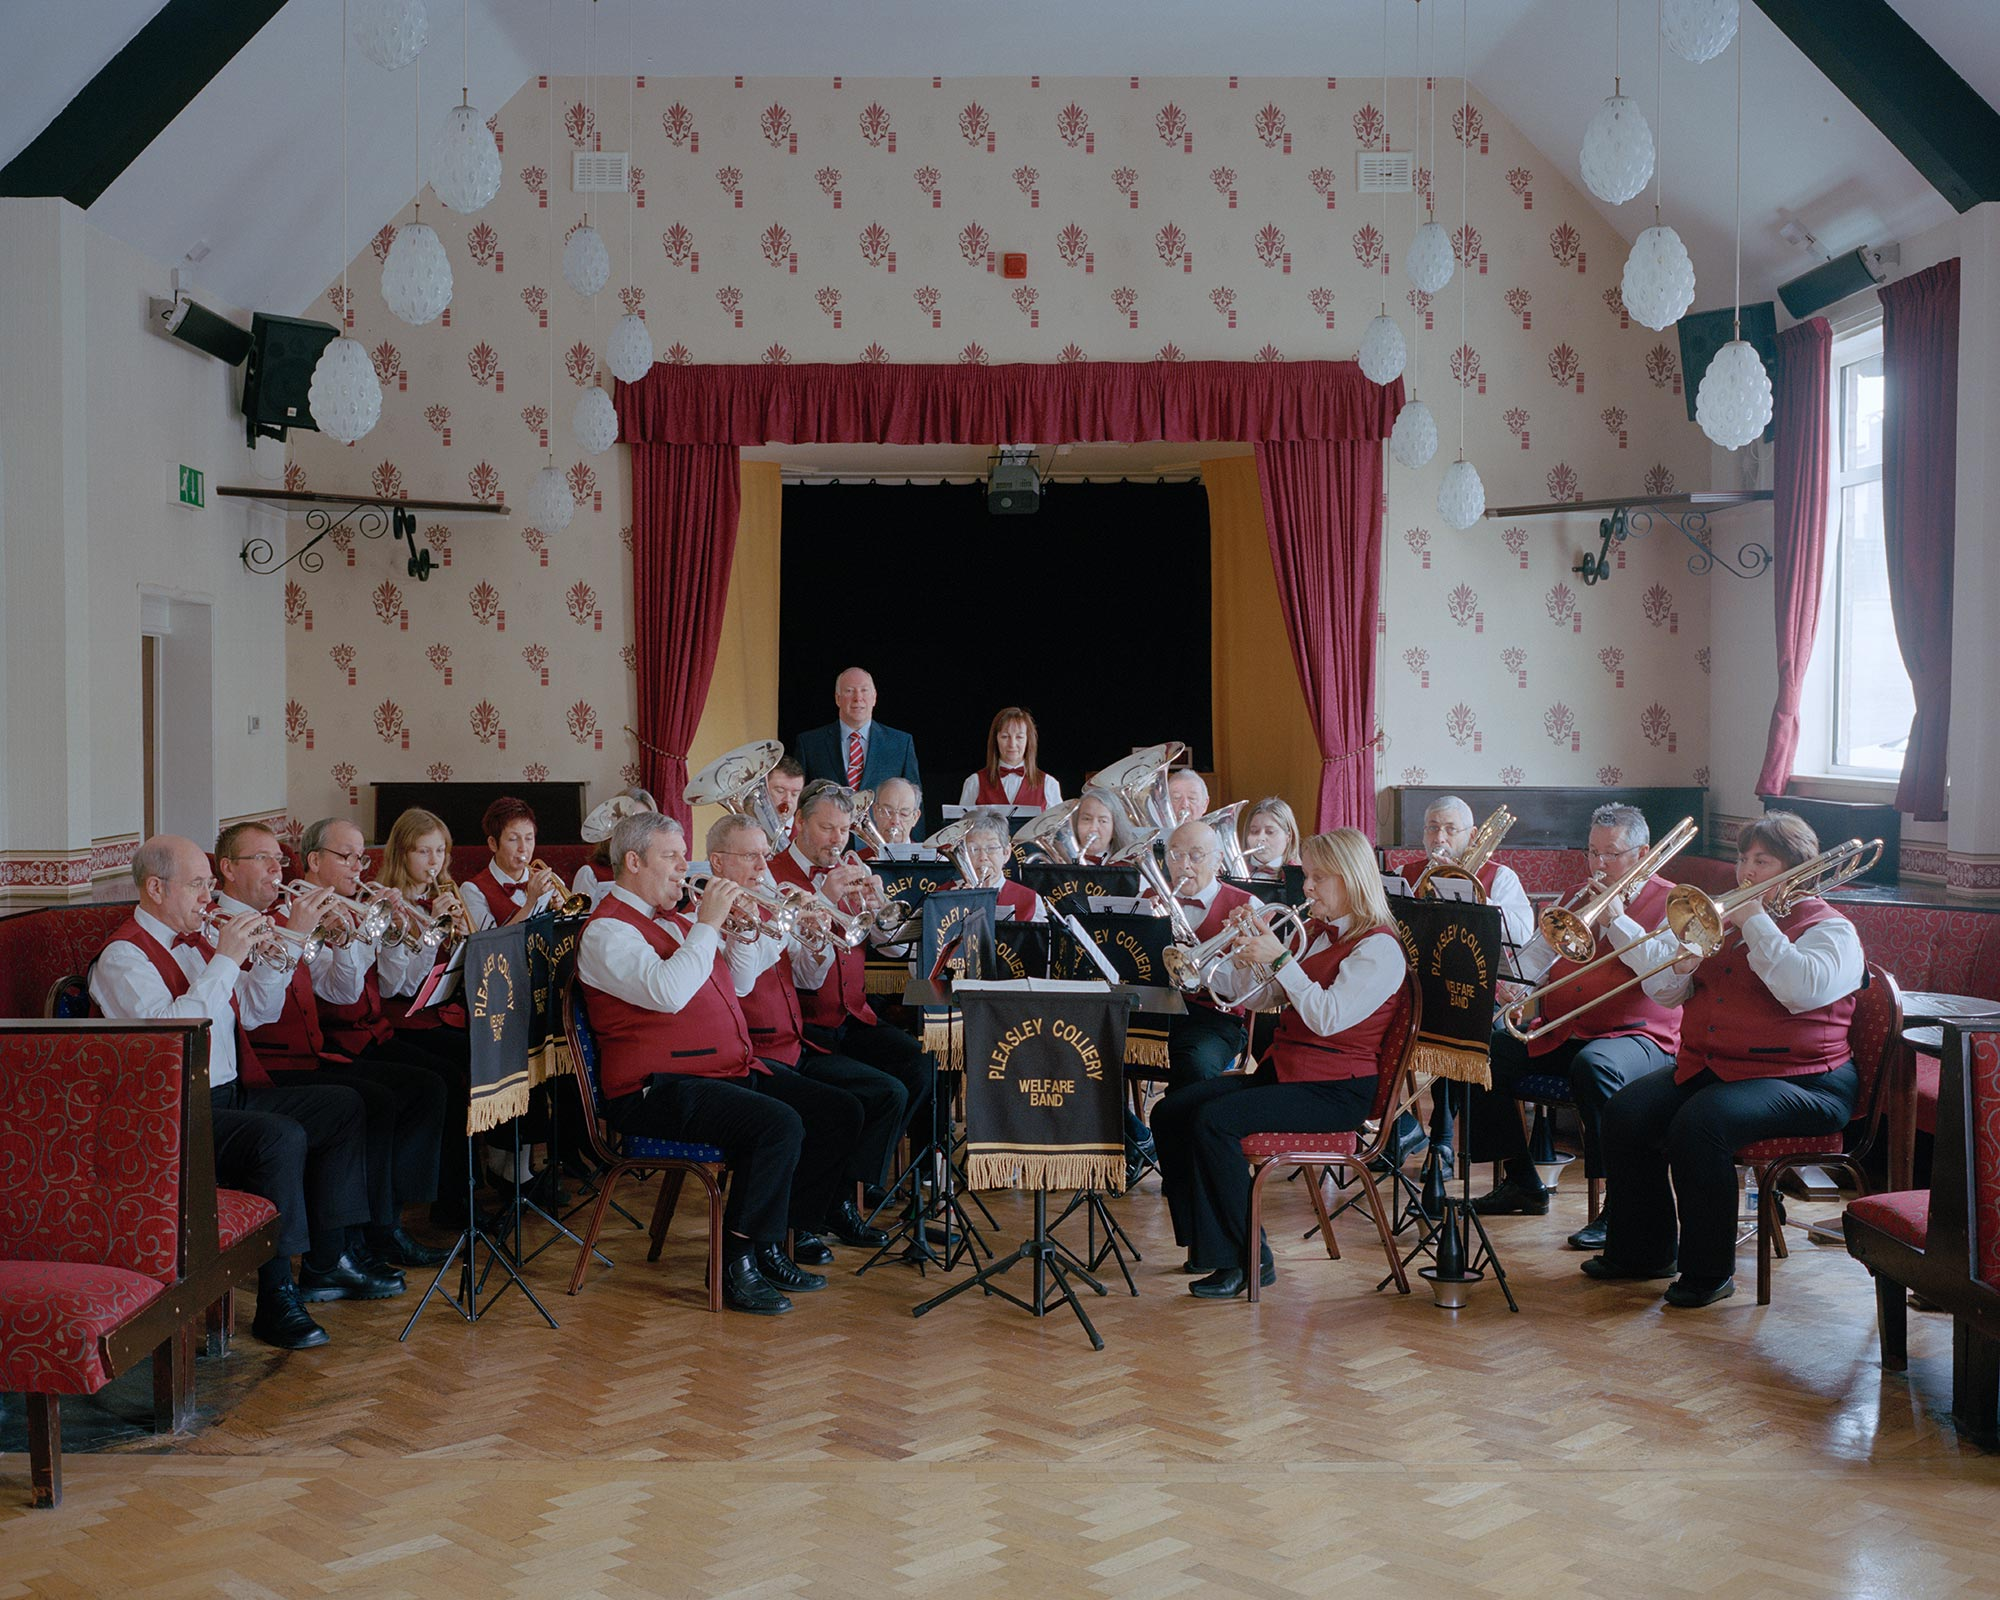 Pleasley Colliery Brass Band rehearsing at Pleasley Miners' Welfare, Derbyshire.